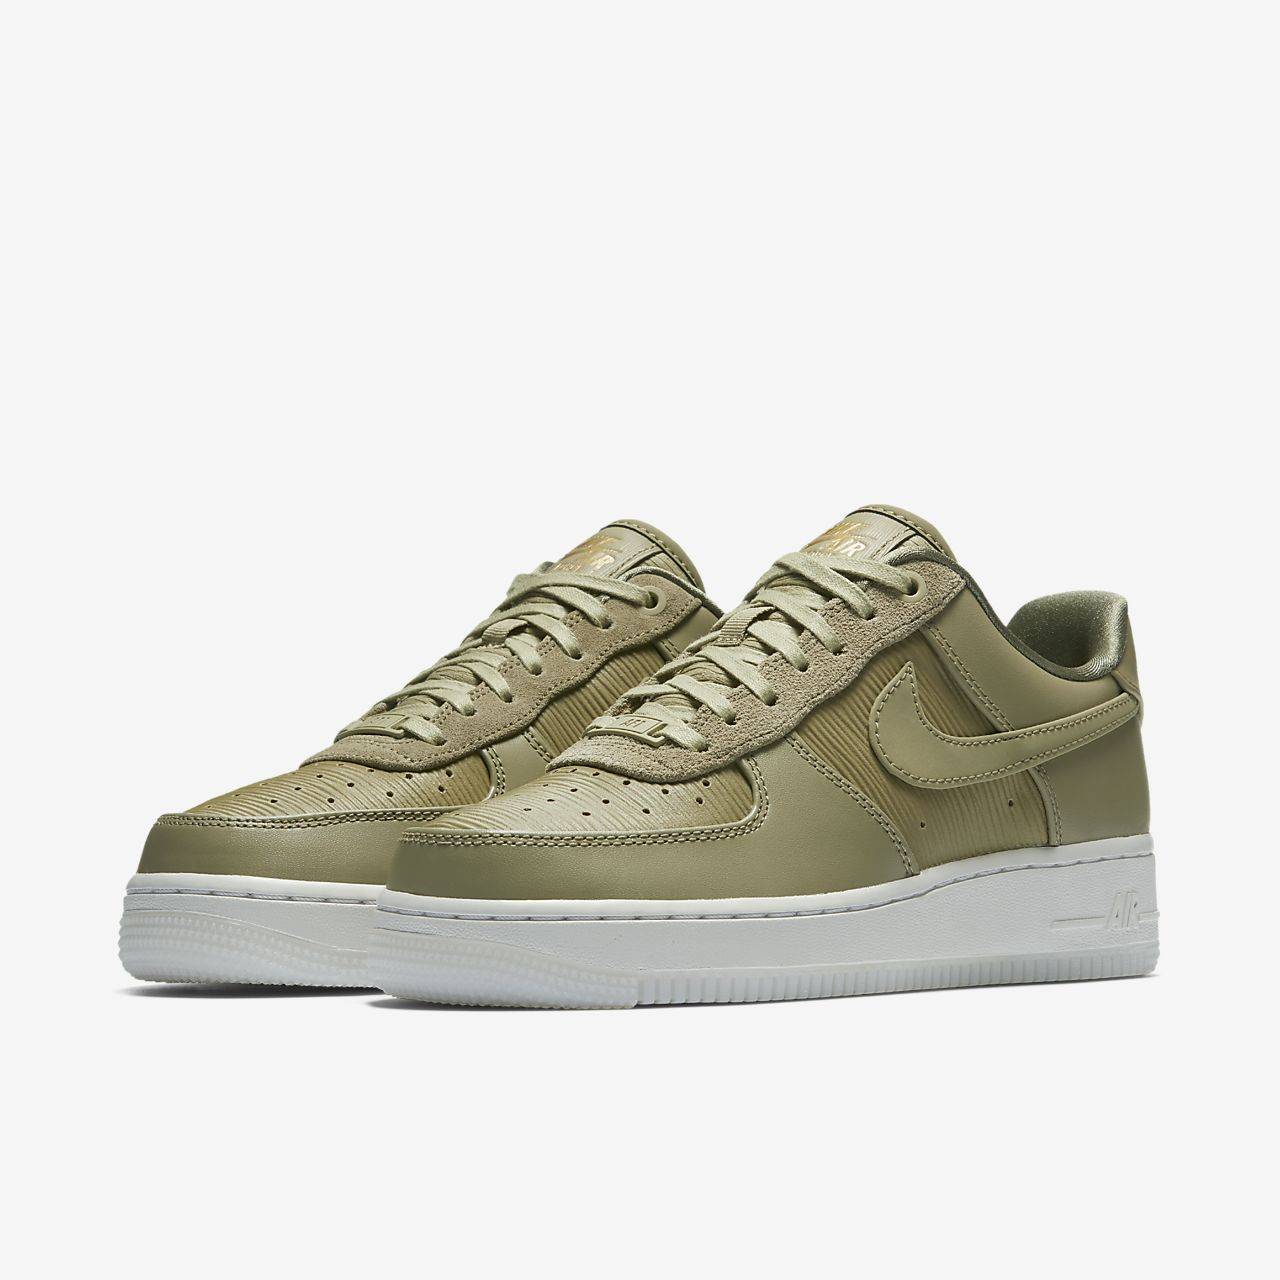 Nike AIR FORCE 1 '07 LX SNEAKERS